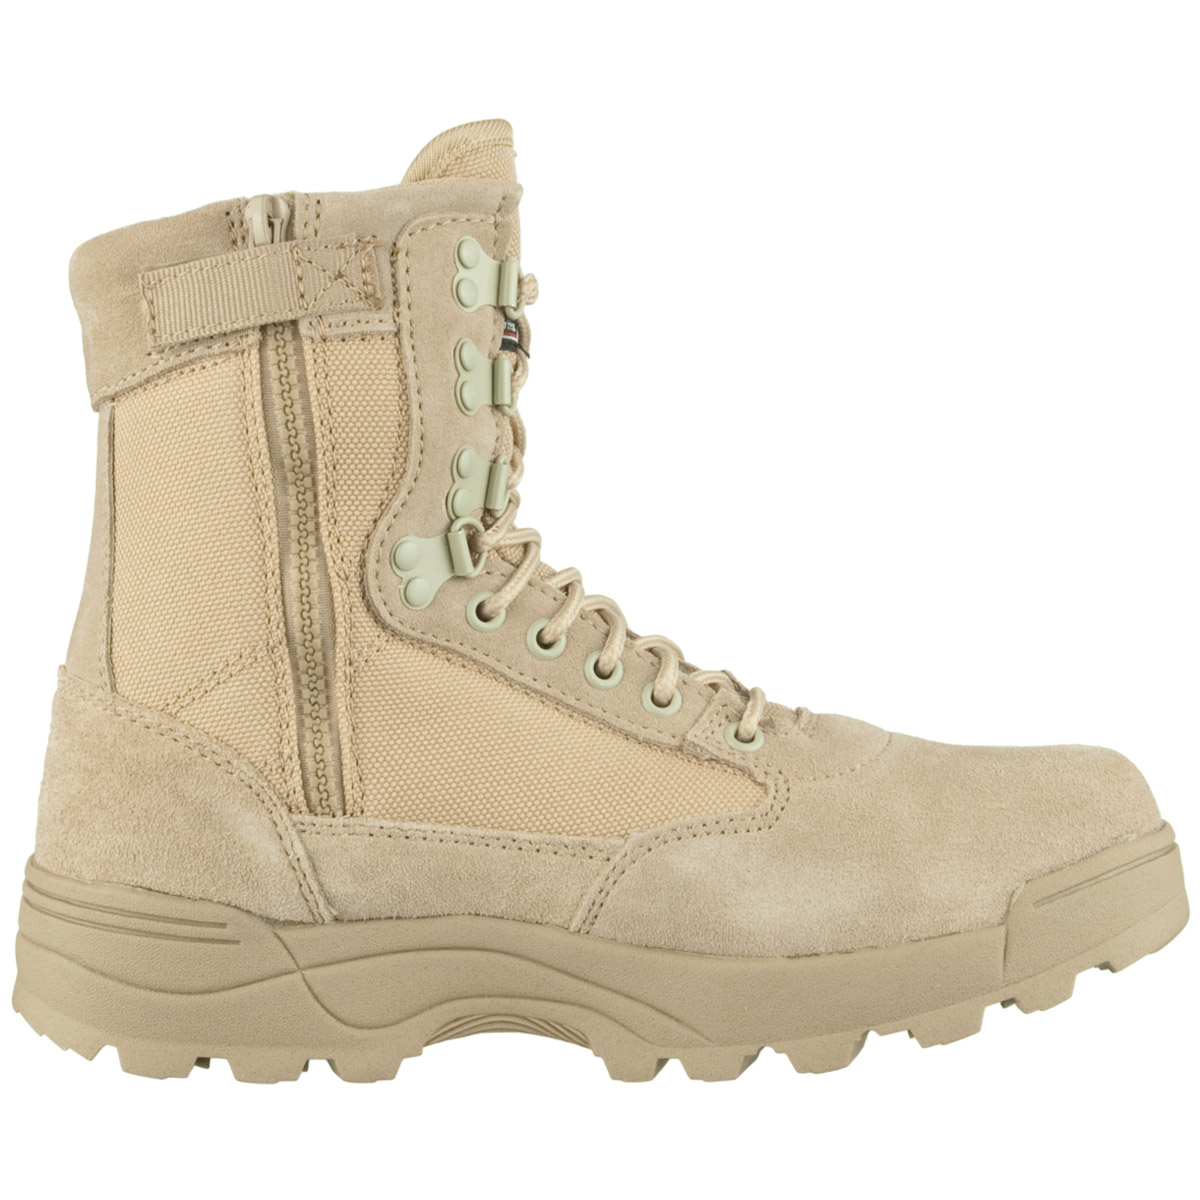 Details about Brandit Tactical Military Combat Side Zip Mens Boots Suede Leather Khaki Camel